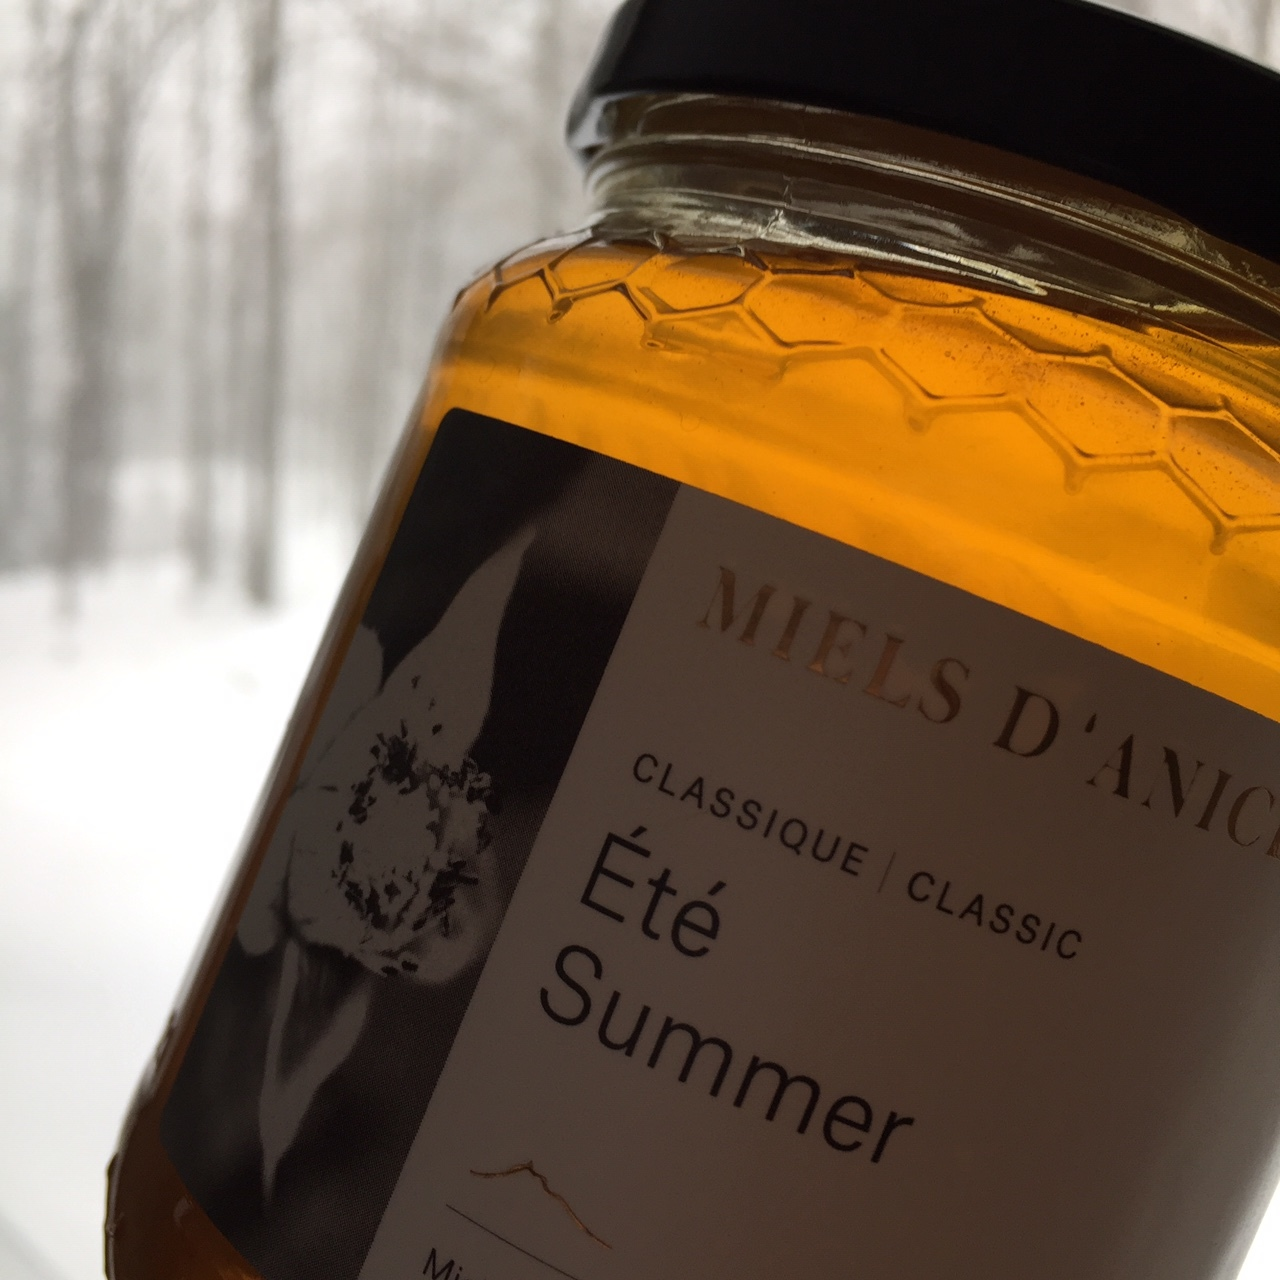 Honey sweet Honey - The honey we choose is Miels D'anicet. It is Certified Organic, made in beautiful Quebec and is one of the best honey companies worldwide. Don't skimp, buy real honey and support your provincial bees.